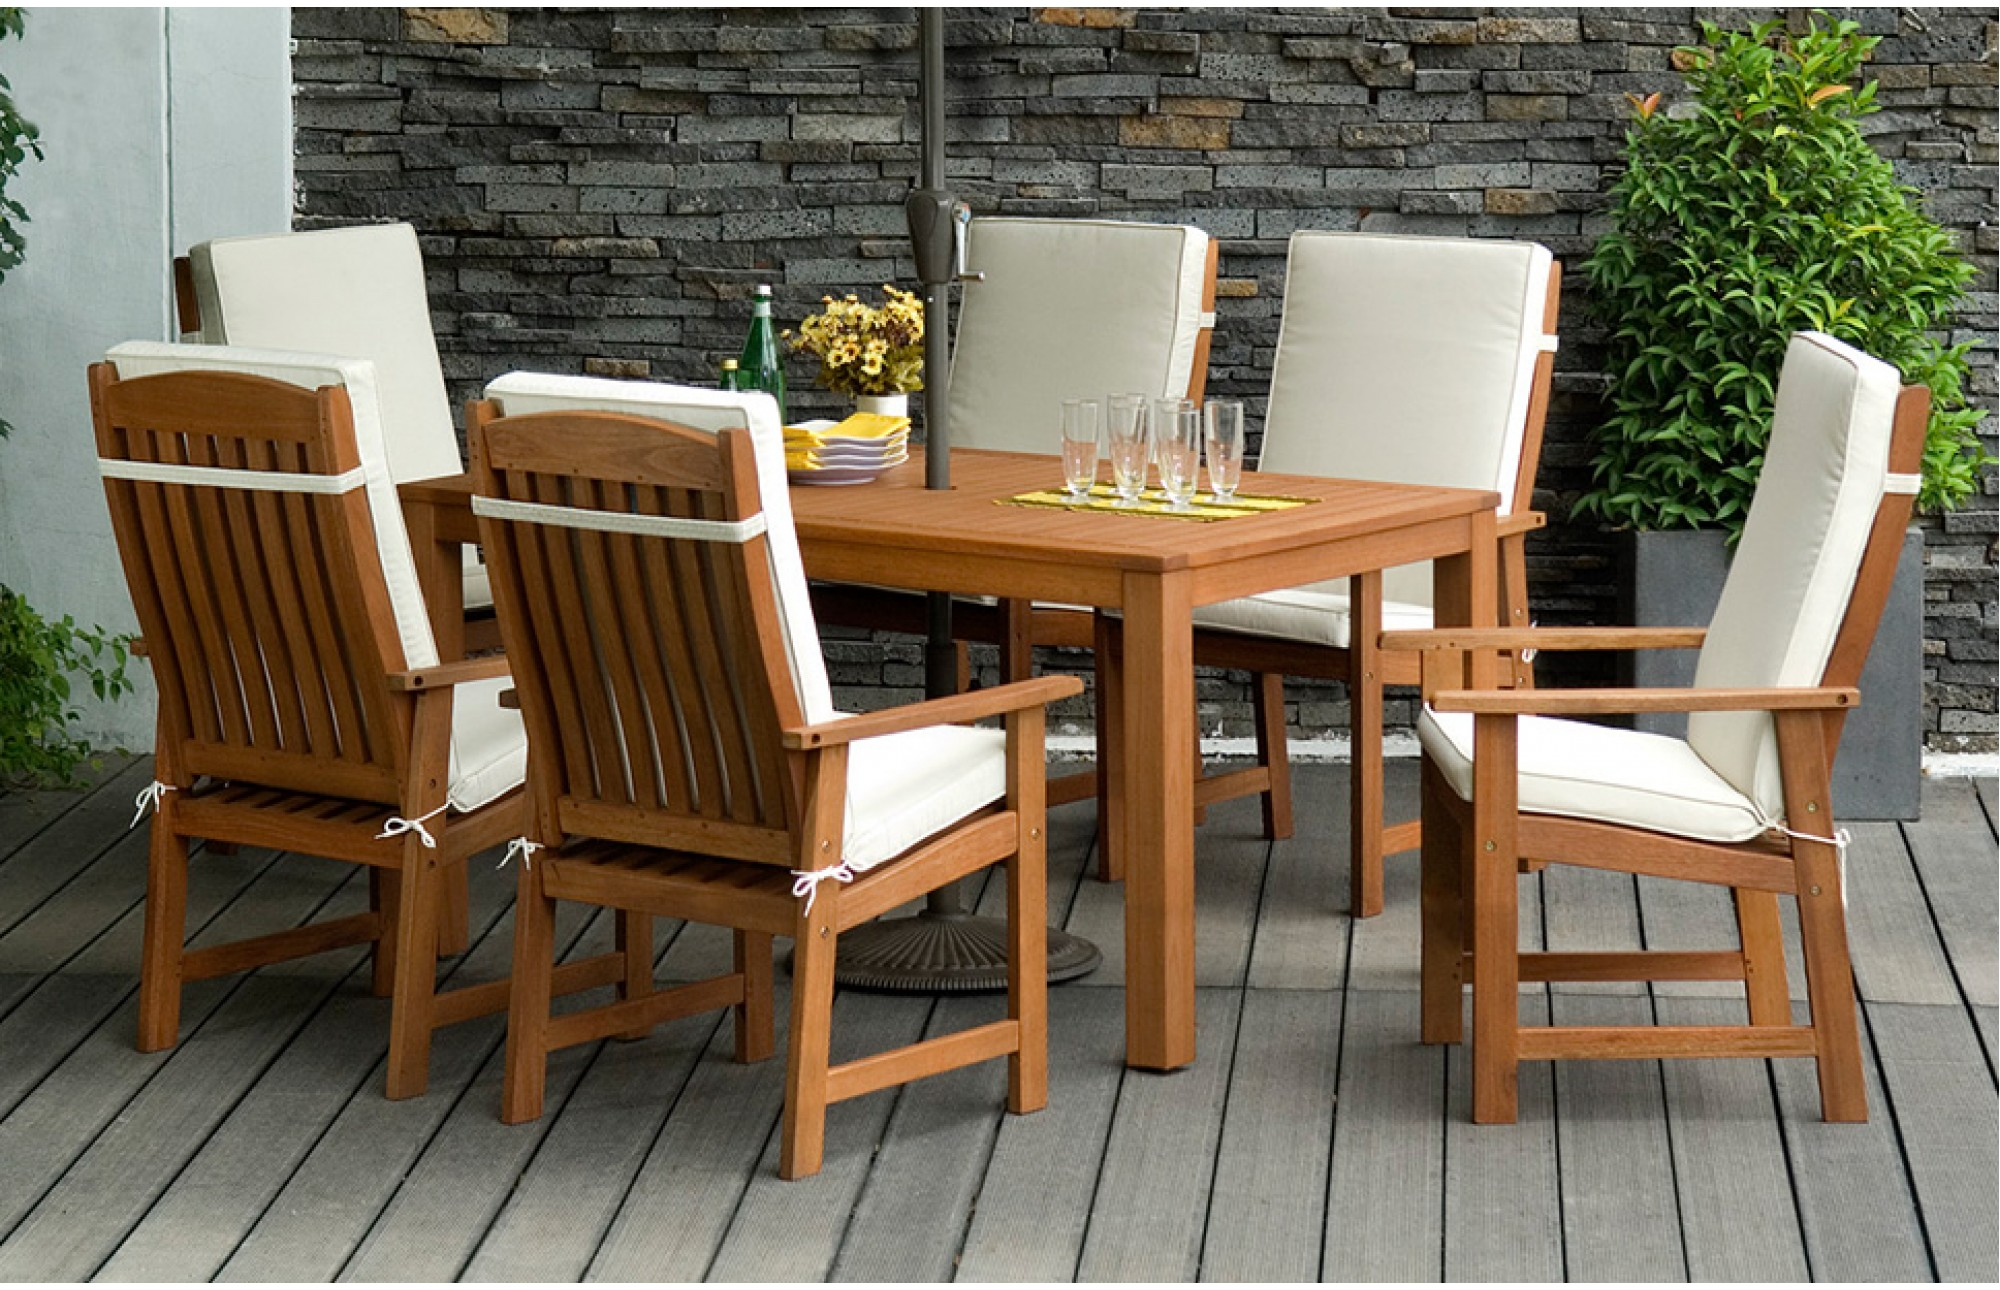 wooden garden furniture sets 6 seater garden dining set outdoor furniture out out with regard to PRQWBLE